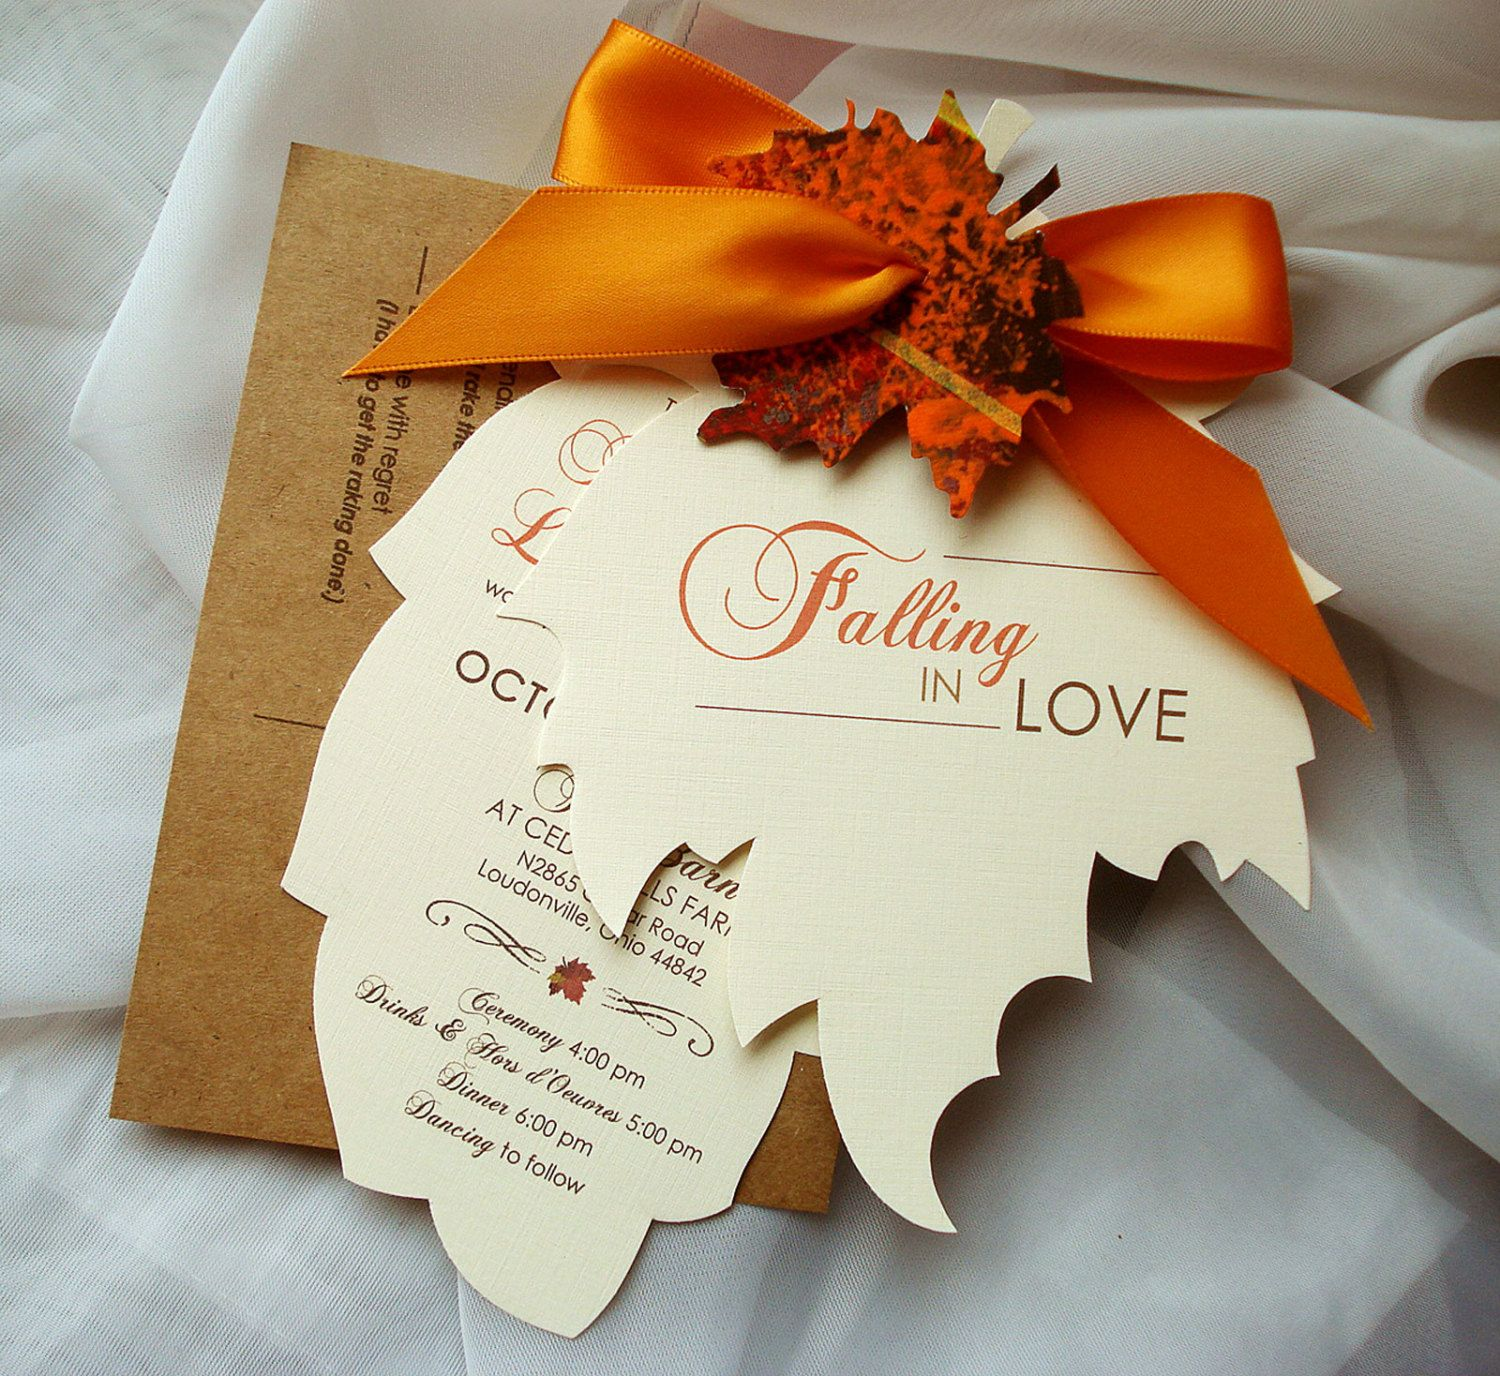 Falling in love hand cut autumn leaf wedding invitation sample by falling in love hand cut autumn leaf wedding invitation sample by envymarketing on etsy filmwisefo Choice Image